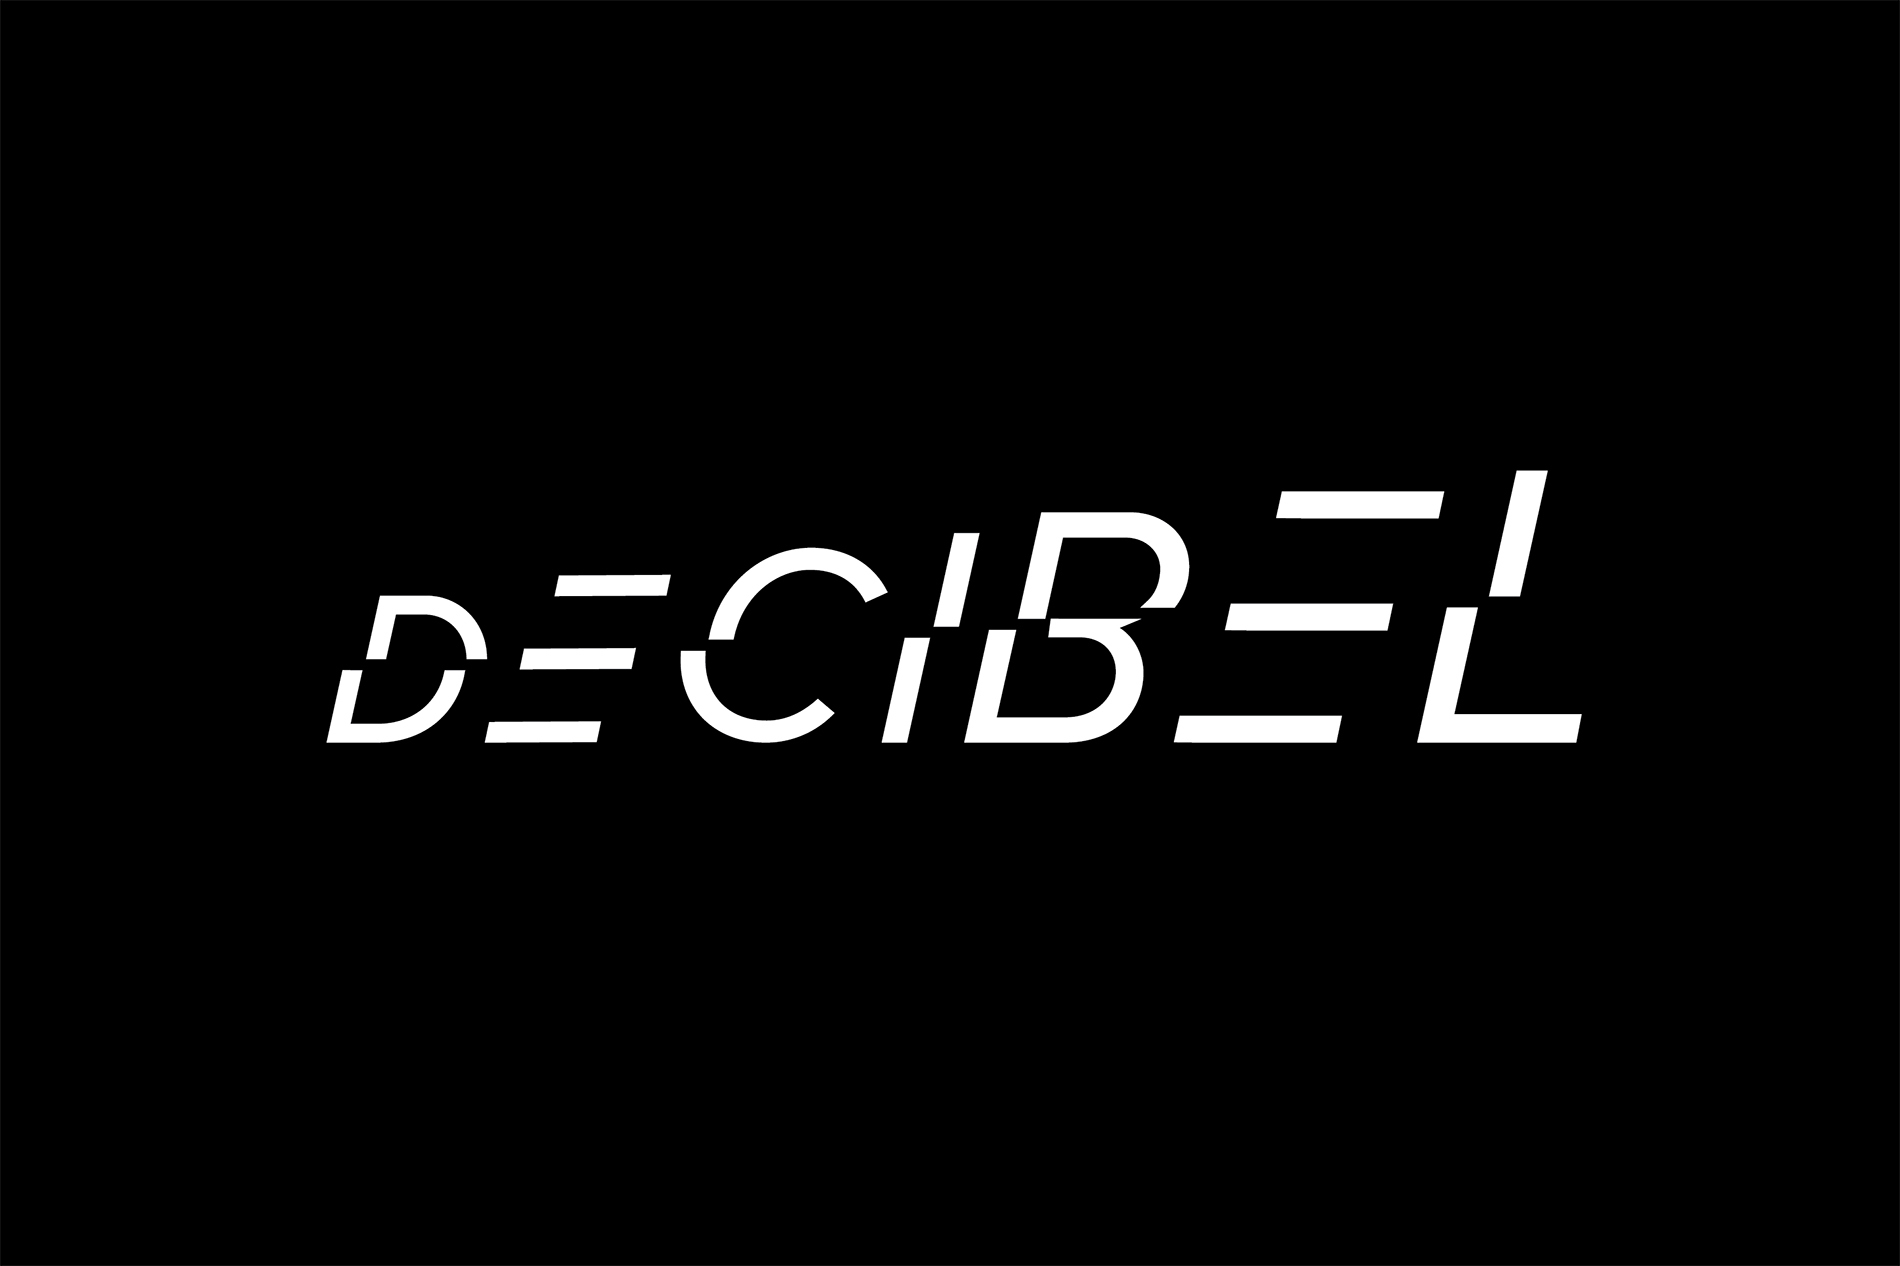 Decibel ReaI stories  from real women encouraging action towards gender equality